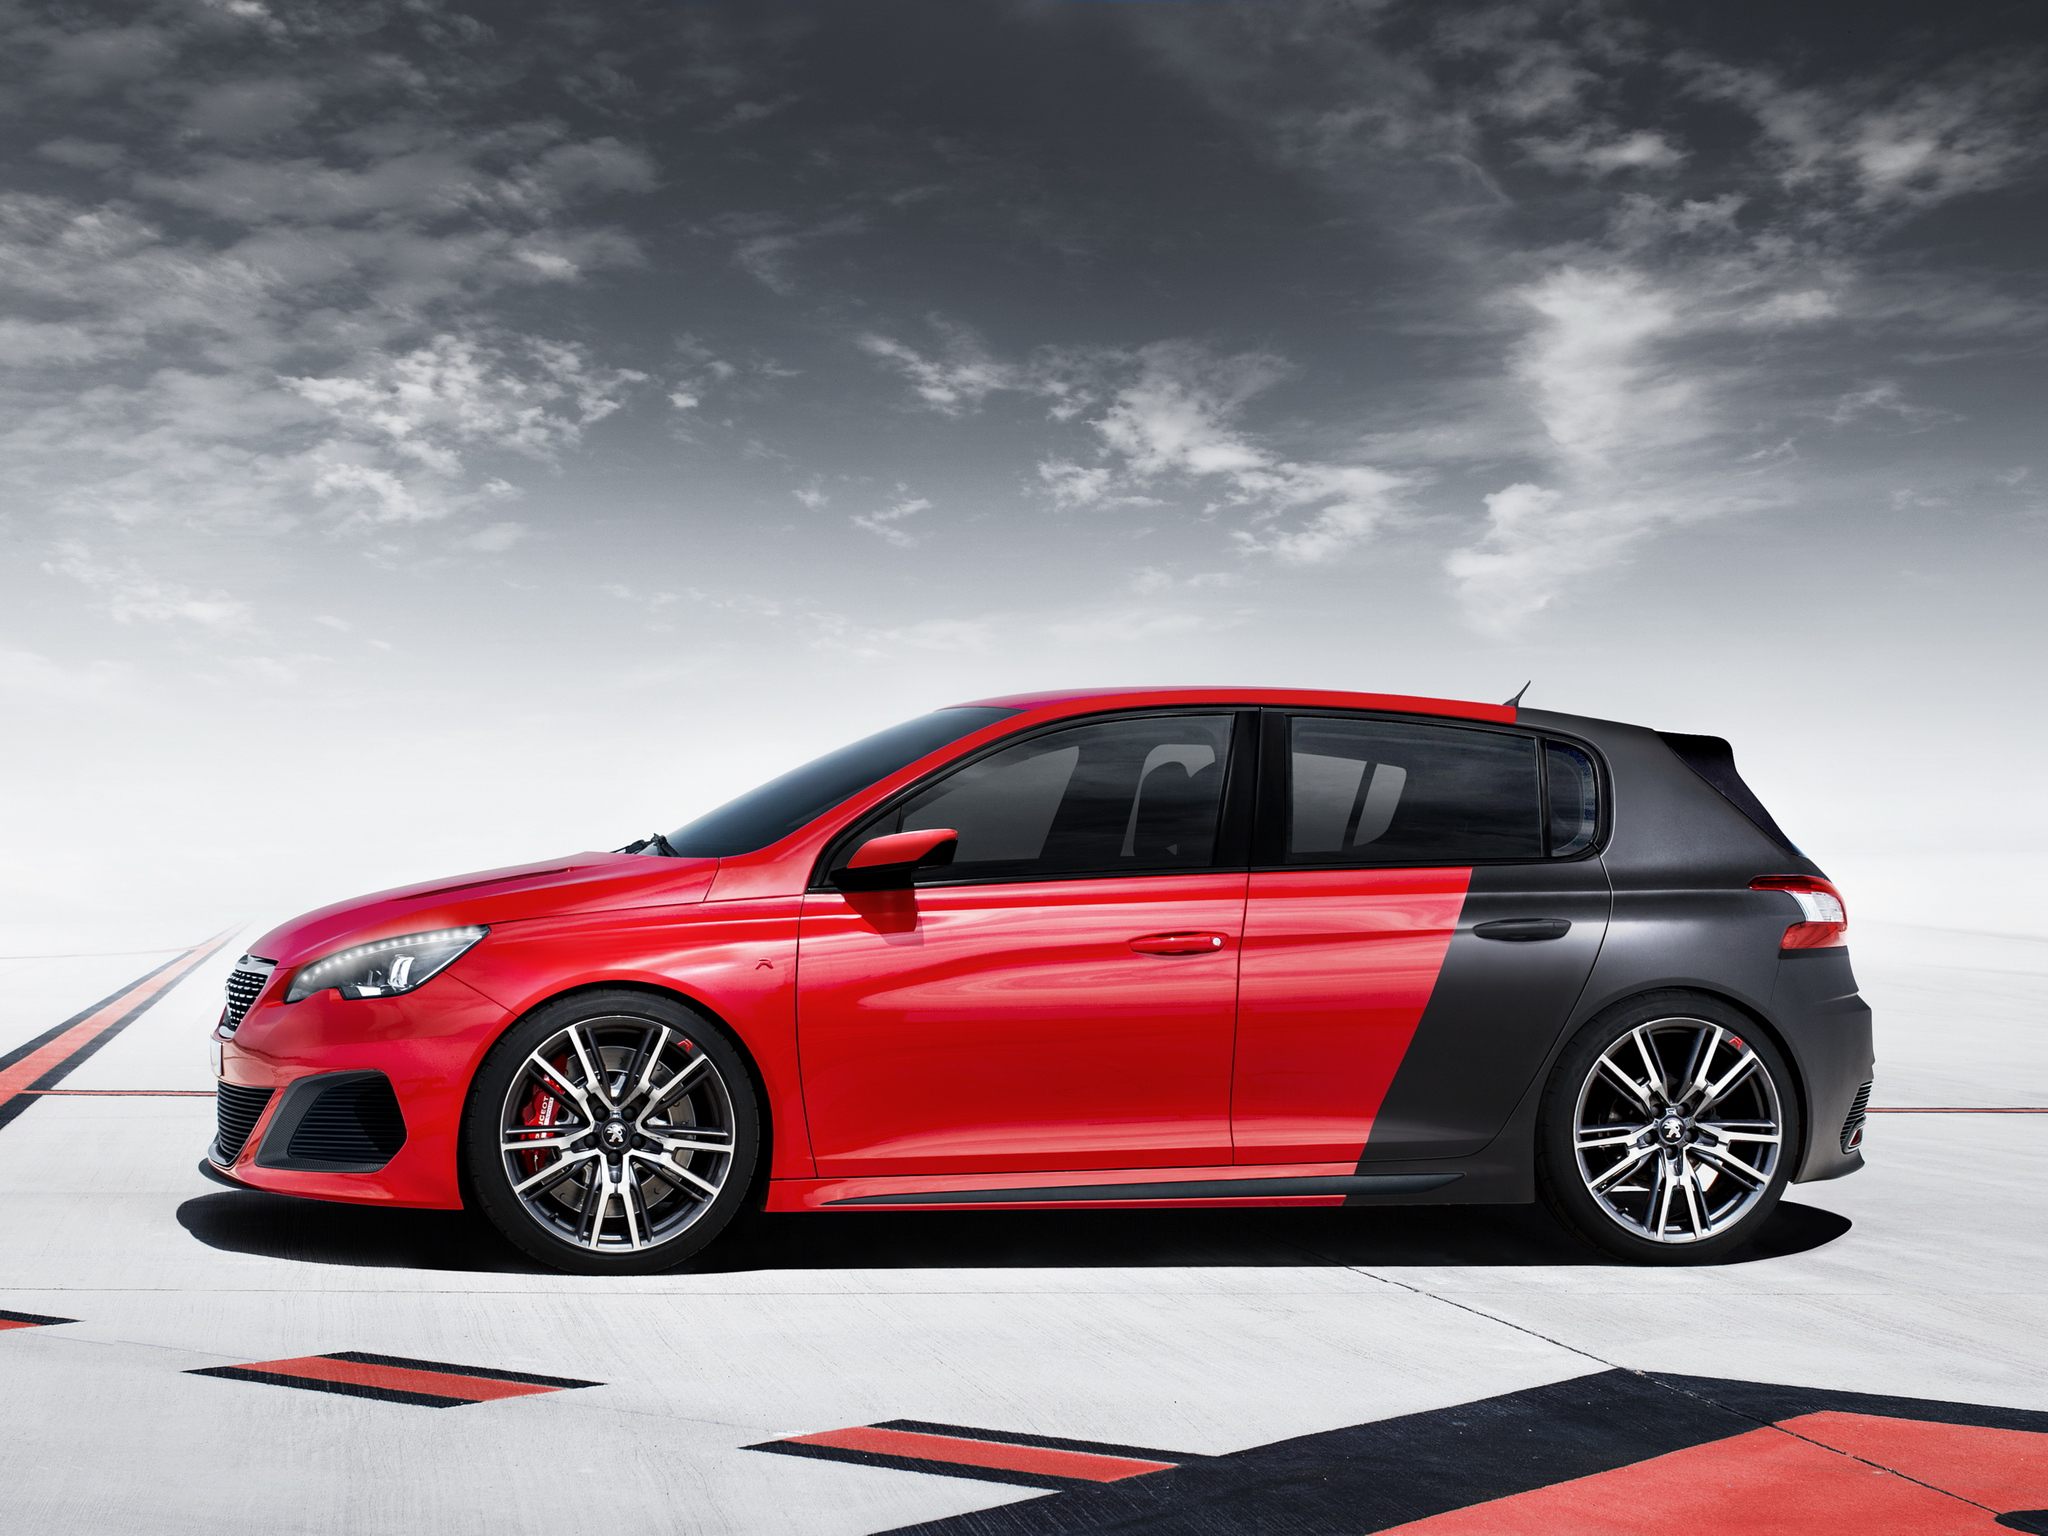 2015 Peugeot 308 Gti Confirmed Will Have 250 Or 270 Hp